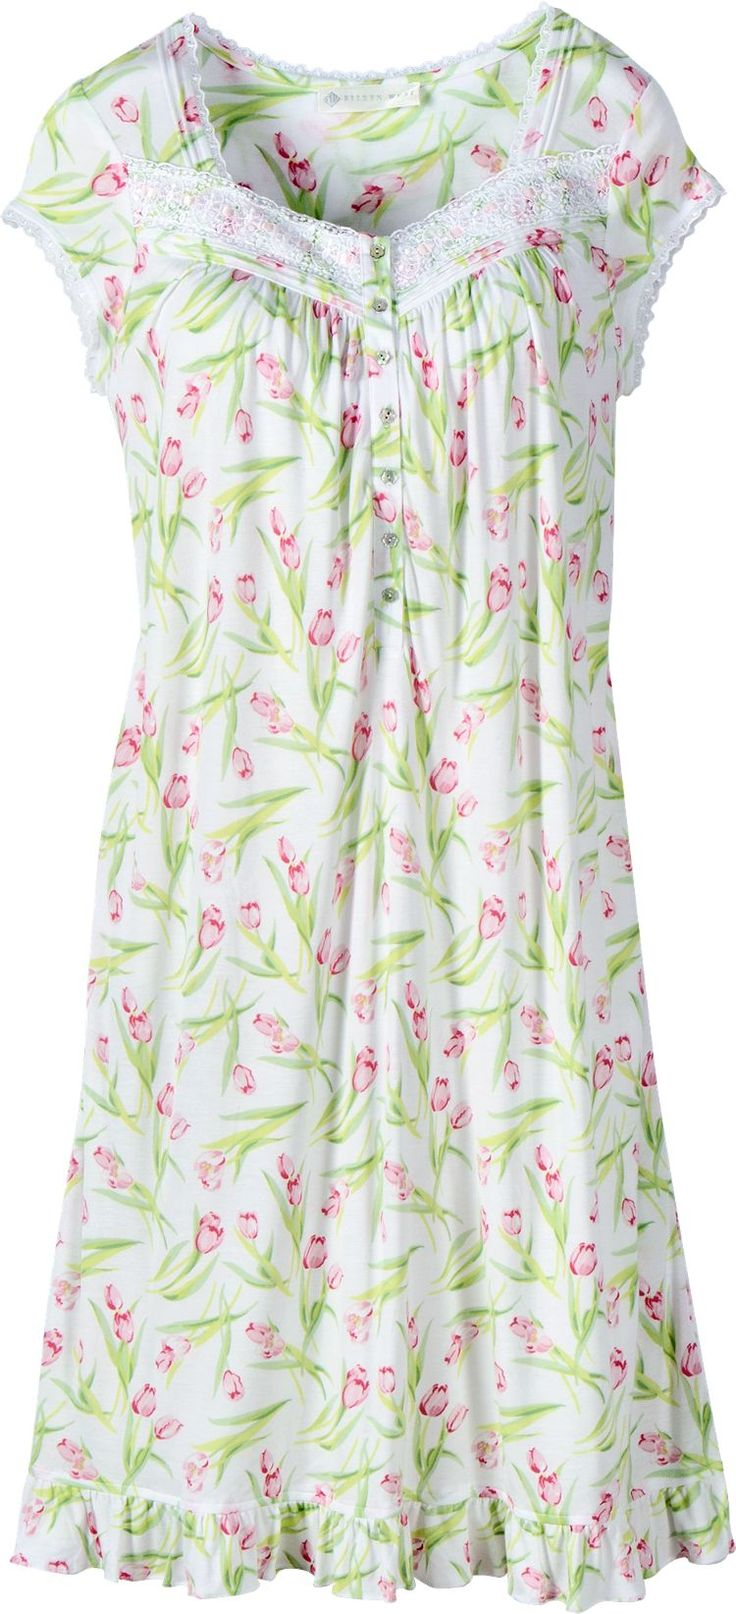 Eileen West Timeless Tulips Waltz Nightgown: You can't help but feel that spring is in the air with this nightgown adorned in spring's favorite flower and fashioned from a blend of cotton and modal for a fabric that moves with you and feels smooth and velvety soft against your skin.